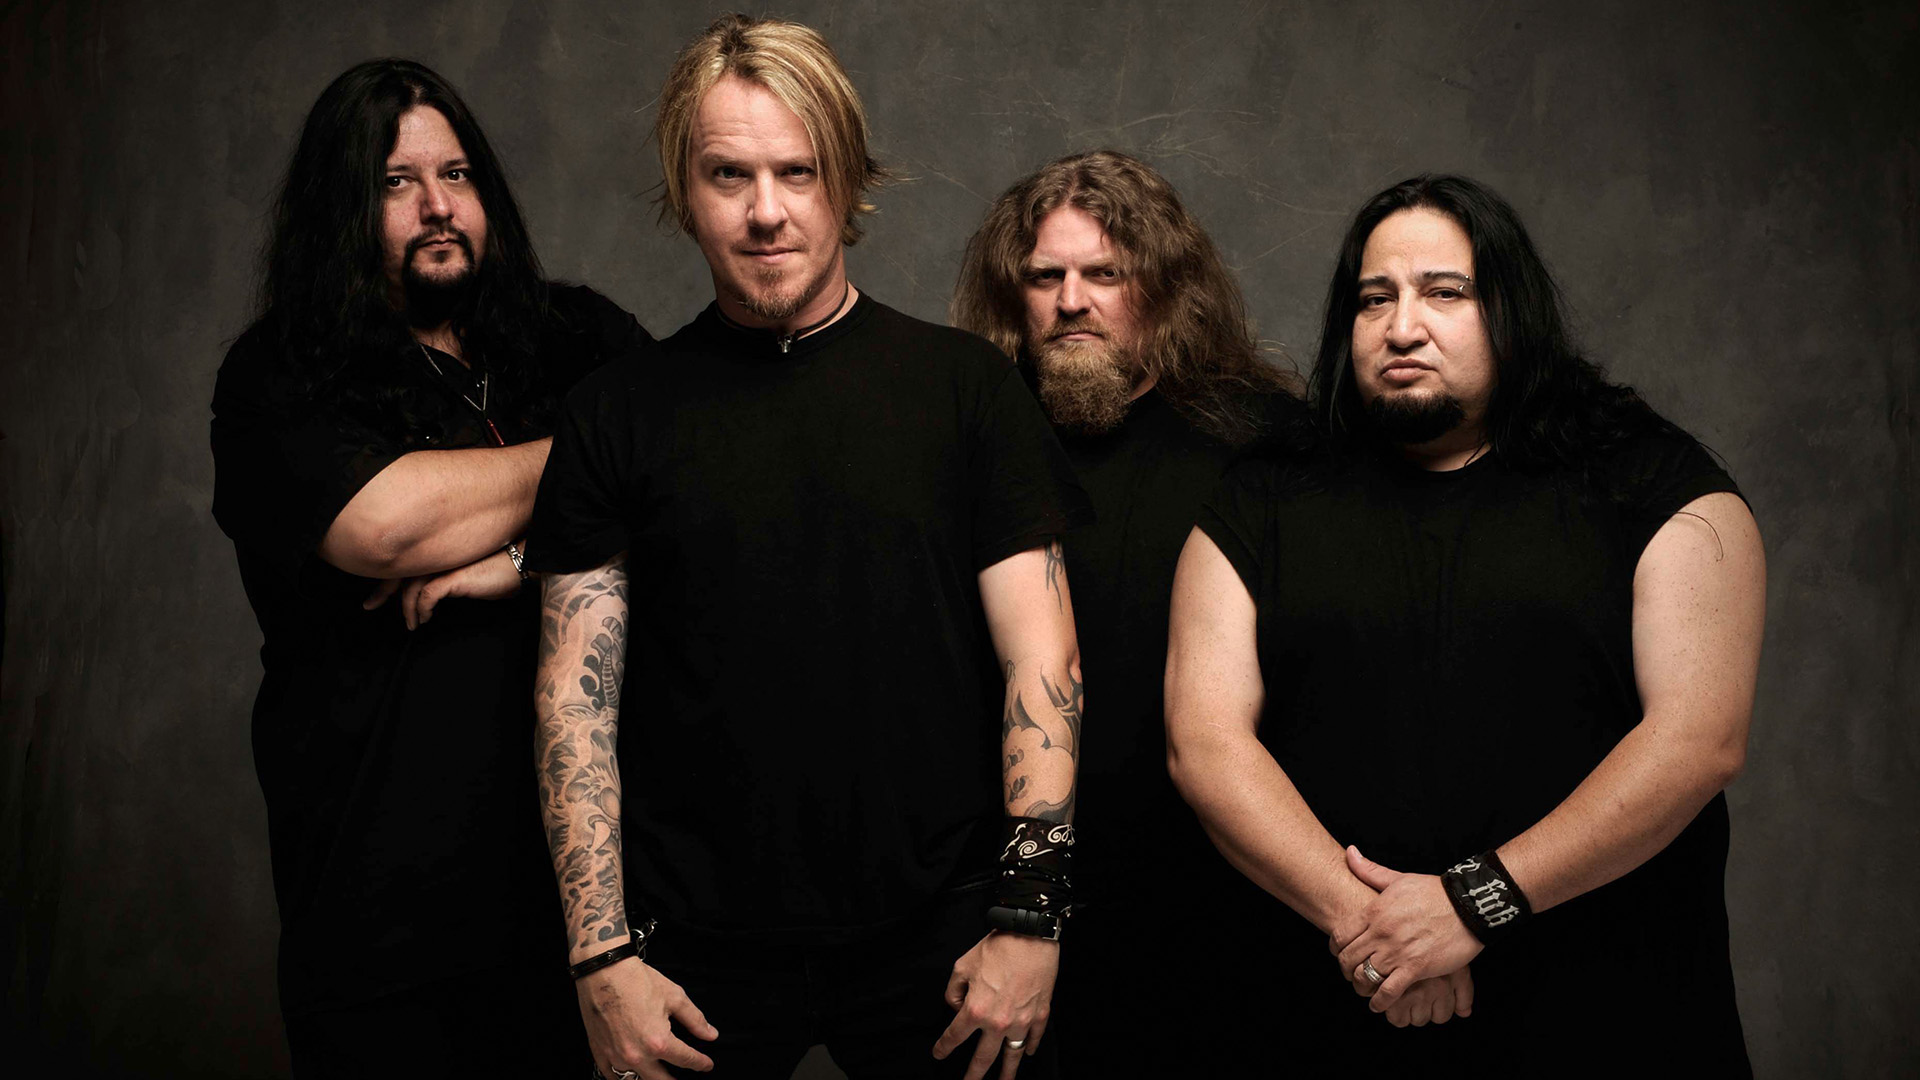 Danzig Wallpaper Hd 7 Fear Factory Hd Wallpapers Background Images